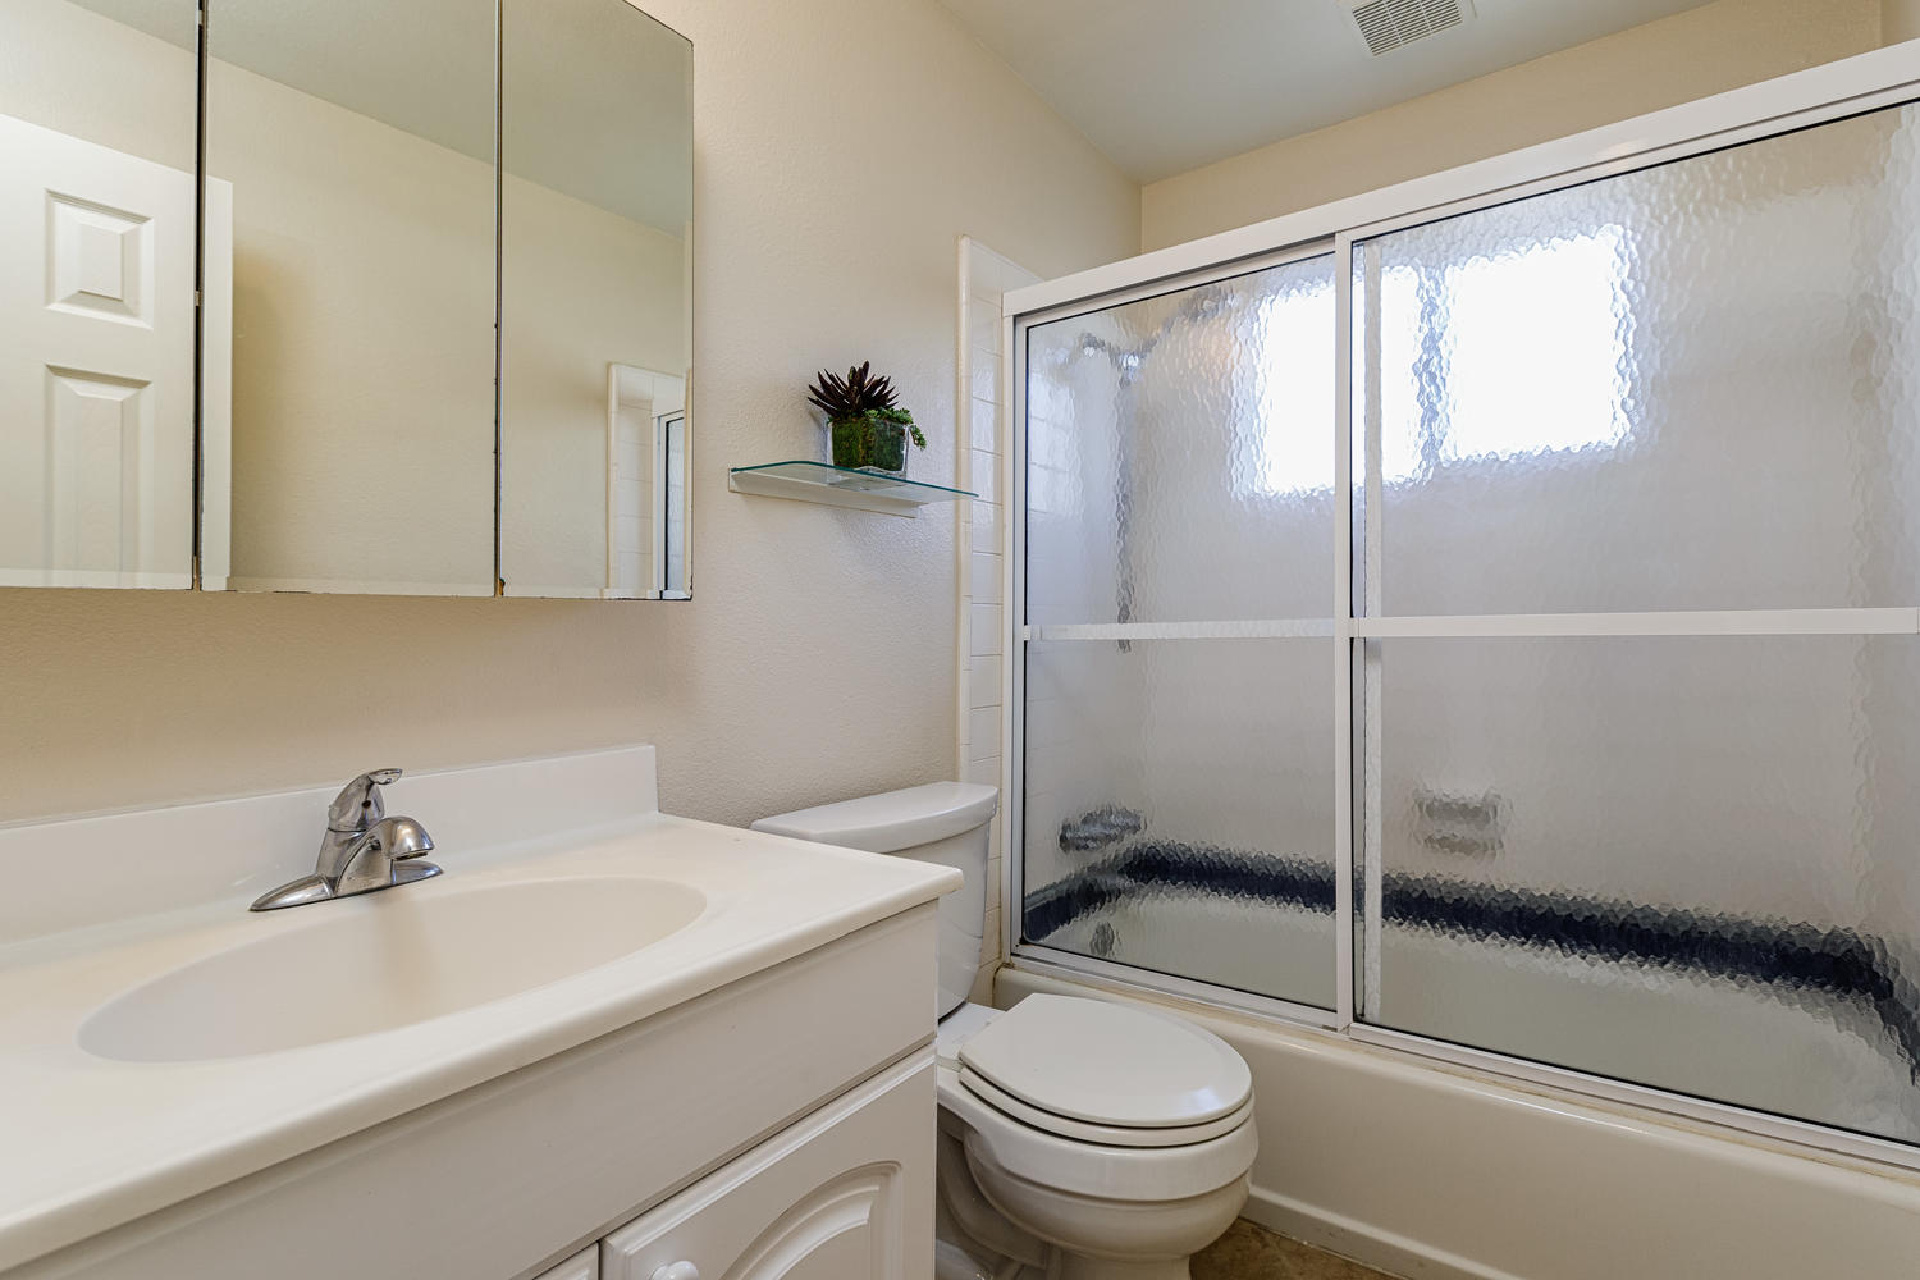 https://addressrealestate.com/media/images/blogs/38/2/b_10-1408-ocean-dr-oxnard-ca-93035-mls-size-018-30-bathroom-1-1500x1000-72dpi.jpg